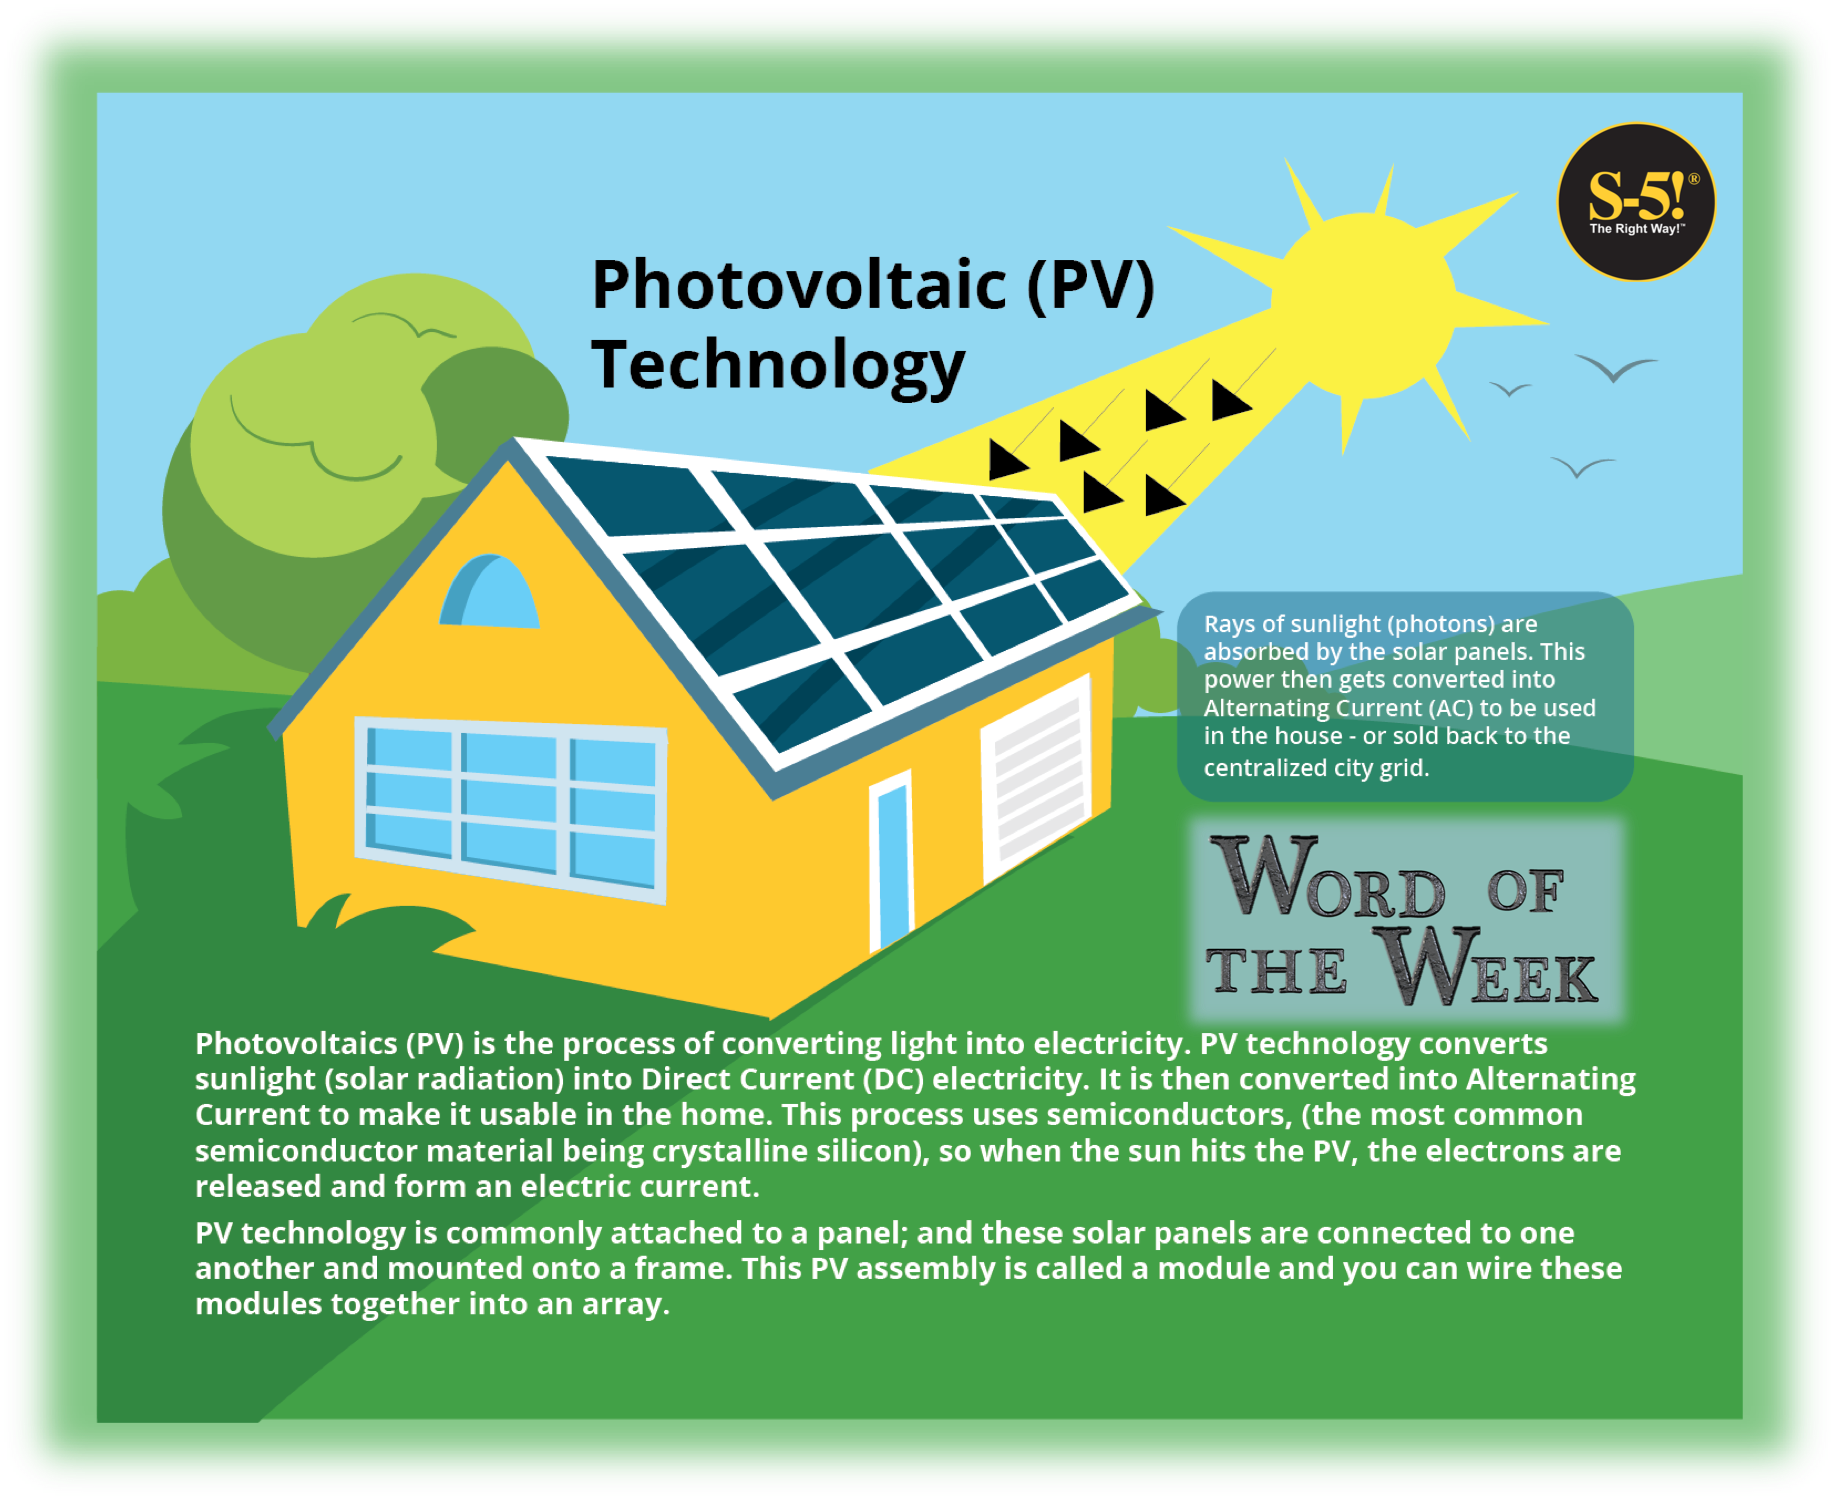 S-5!® - Word of the Week - Photovoltaics(PV) is the process of converting light intoelectricity. PV technology converts sunlight (otherwise known as solar radiation) into direct current electricity. This process uses semiconductors, (the most common semiconductor material being crystalline silicon), so when the sun hits the PV, the electrons are released and form an electric current.  Photovoltaic technology is commonly attached to a panel; and these solar panels are connected to one another and mounted onto a frame. This PV assembly is called a module and you can wire these modules together into an array.